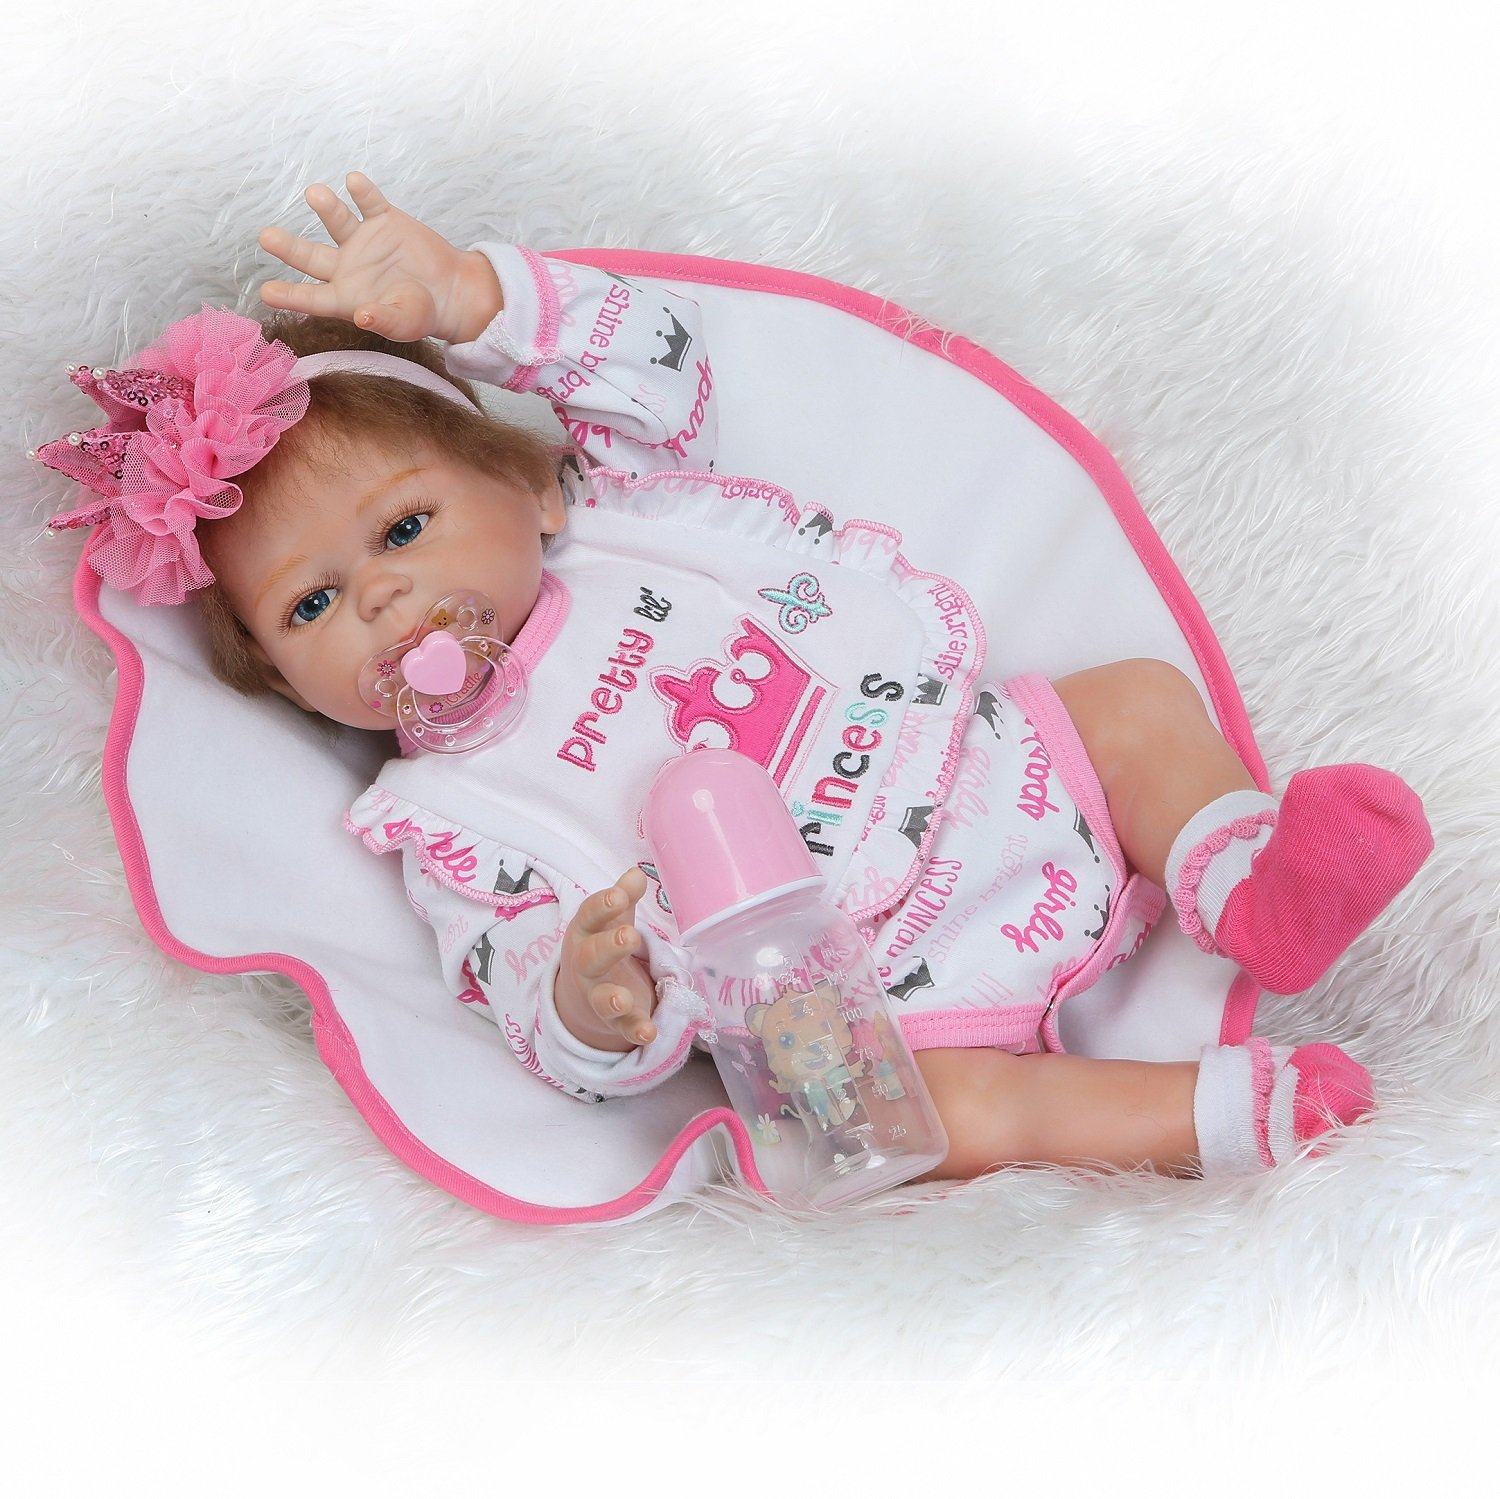 NPK Reborn Doll Real Life Full Body Silicone Vinyl Anatomically Correct Reborn Baby Doll 20inch 50cm Weighted Baby Pink Girl Doll   B07BF7194X